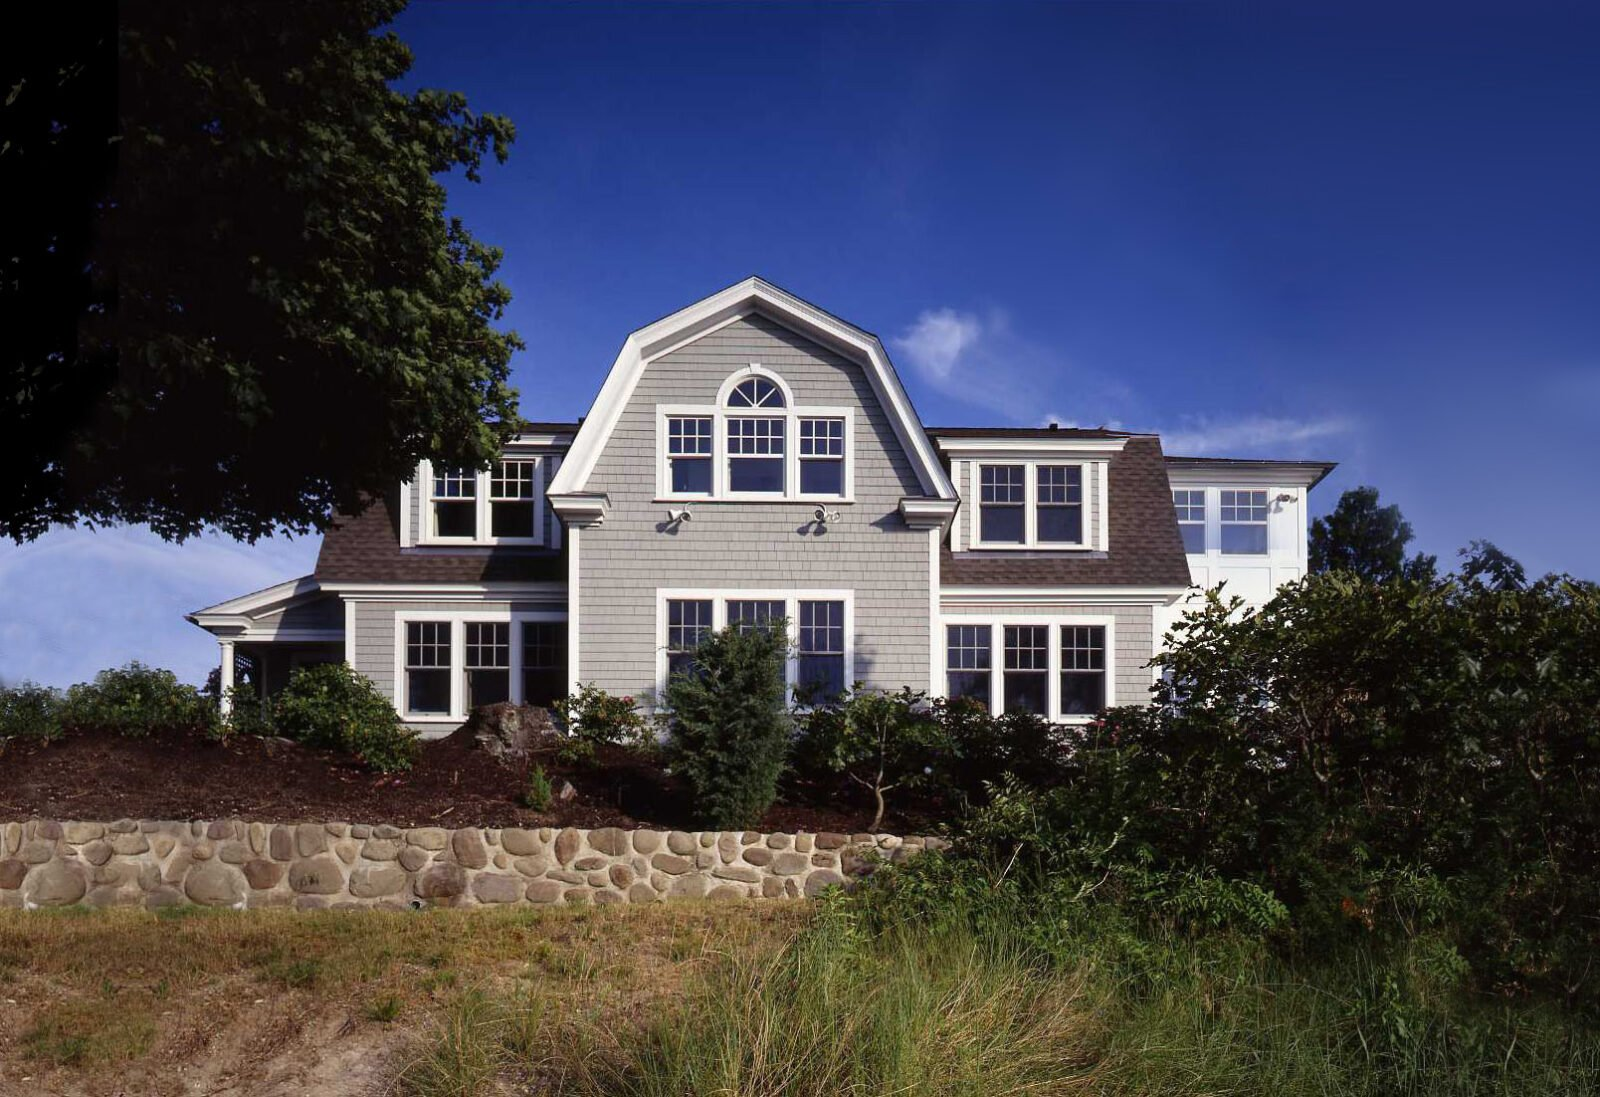 Rye Harbor Home on Cape Cod House Plans Designs